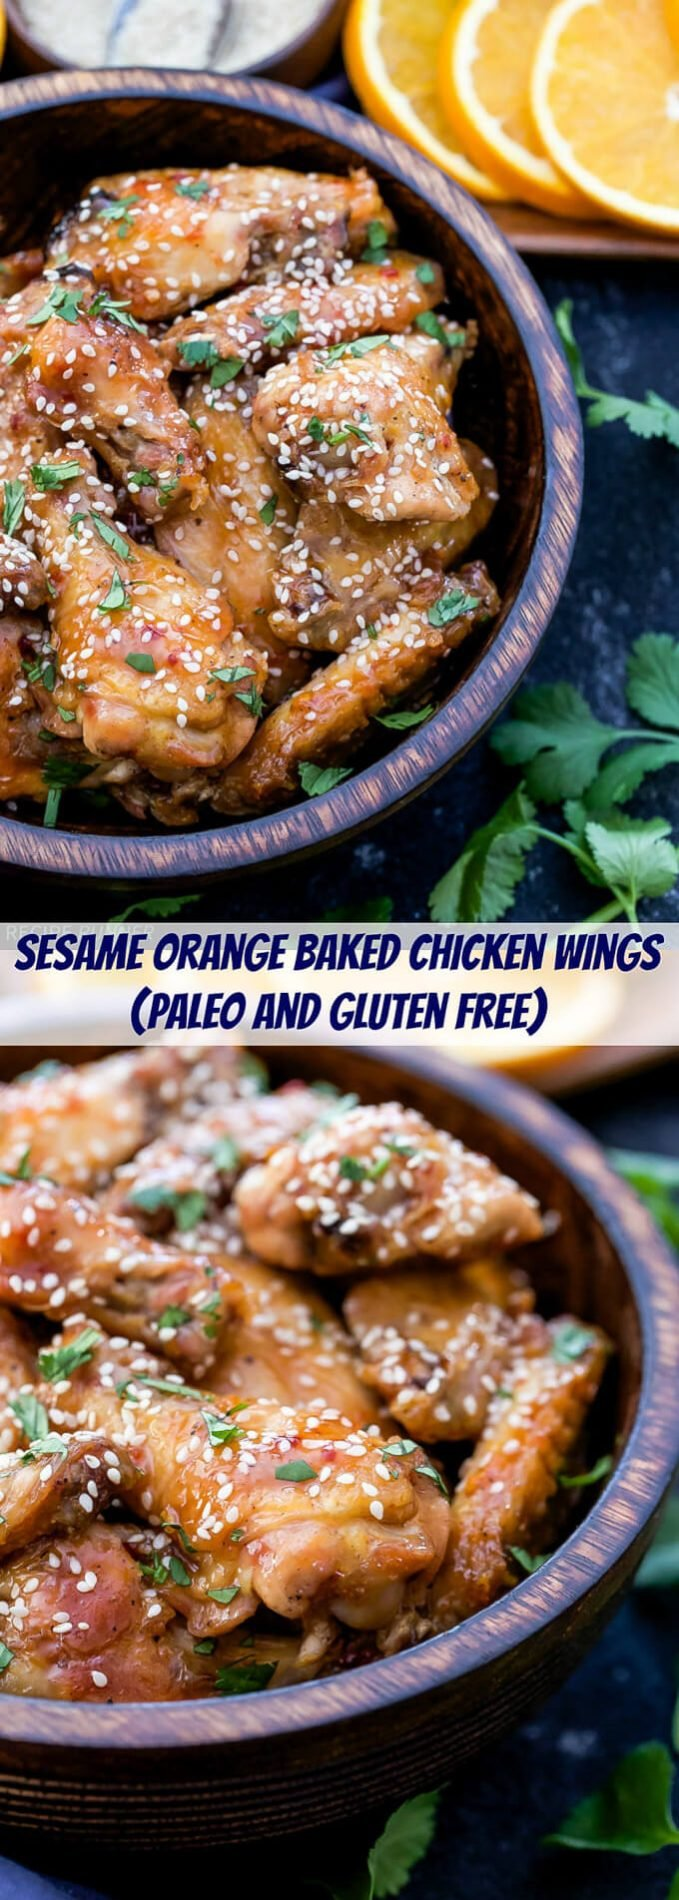 Crisp, baked chicken wings with the most wonderful sweet and spicy orange glaze! These Sesame Orange Chicken Wings are perfect for game day or your next party!